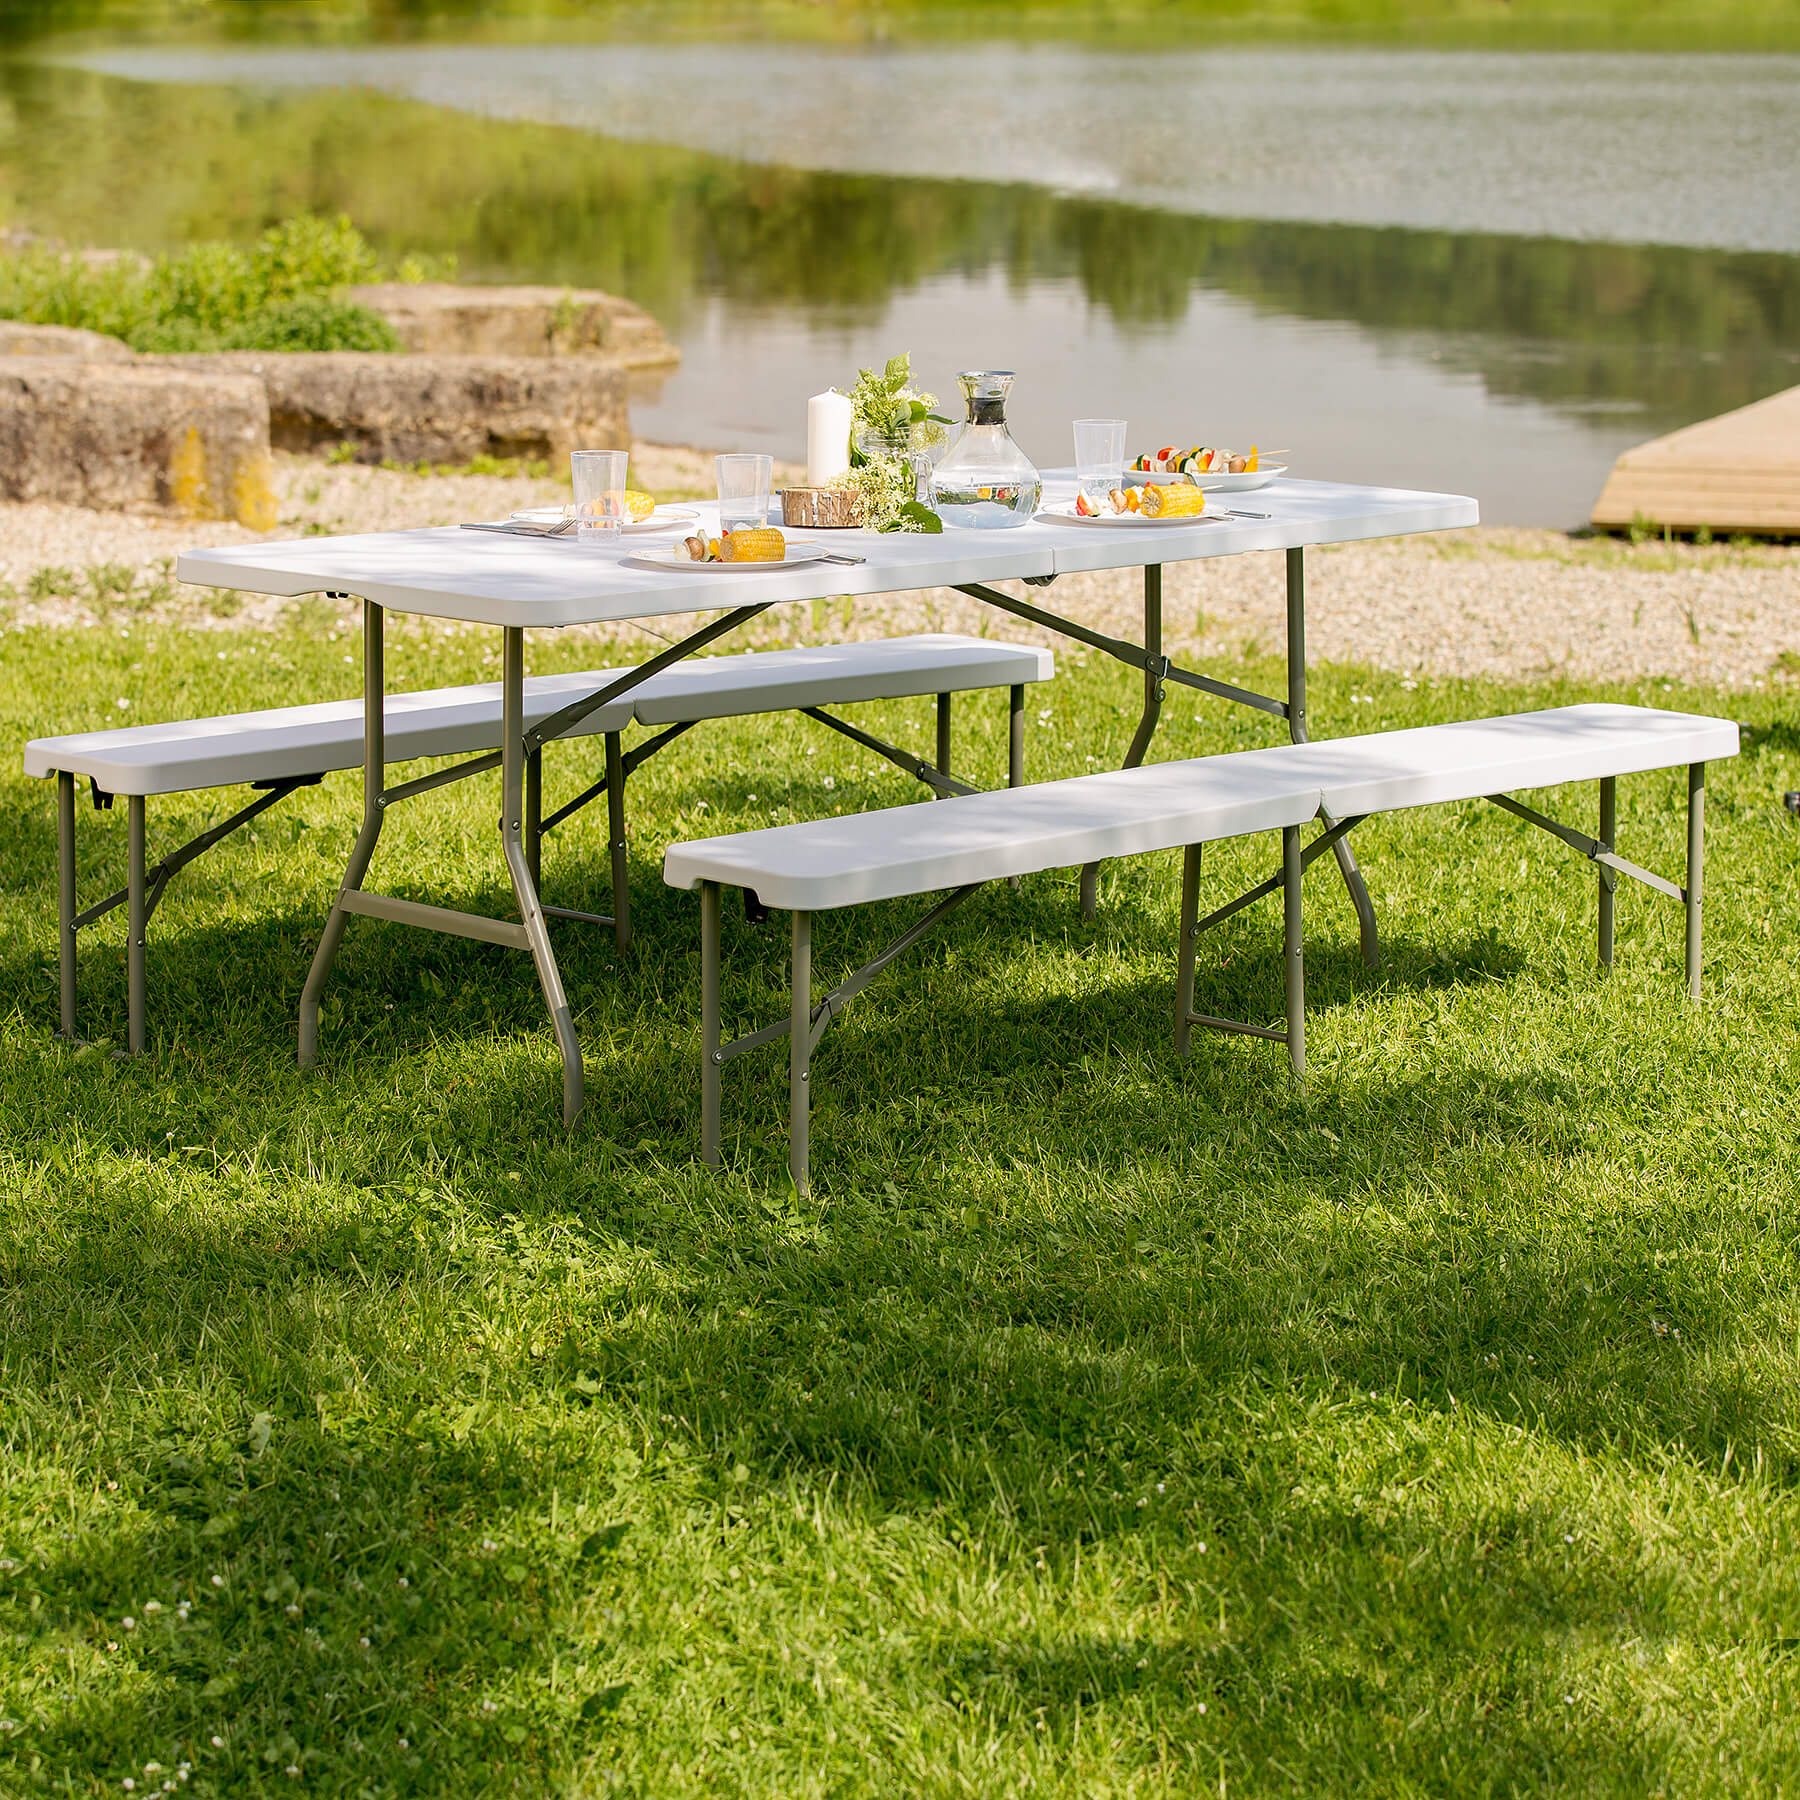 folding portable table benches camping set garden dining furniture set foldable ebay. Black Bedroom Furniture Sets. Home Design Ideas